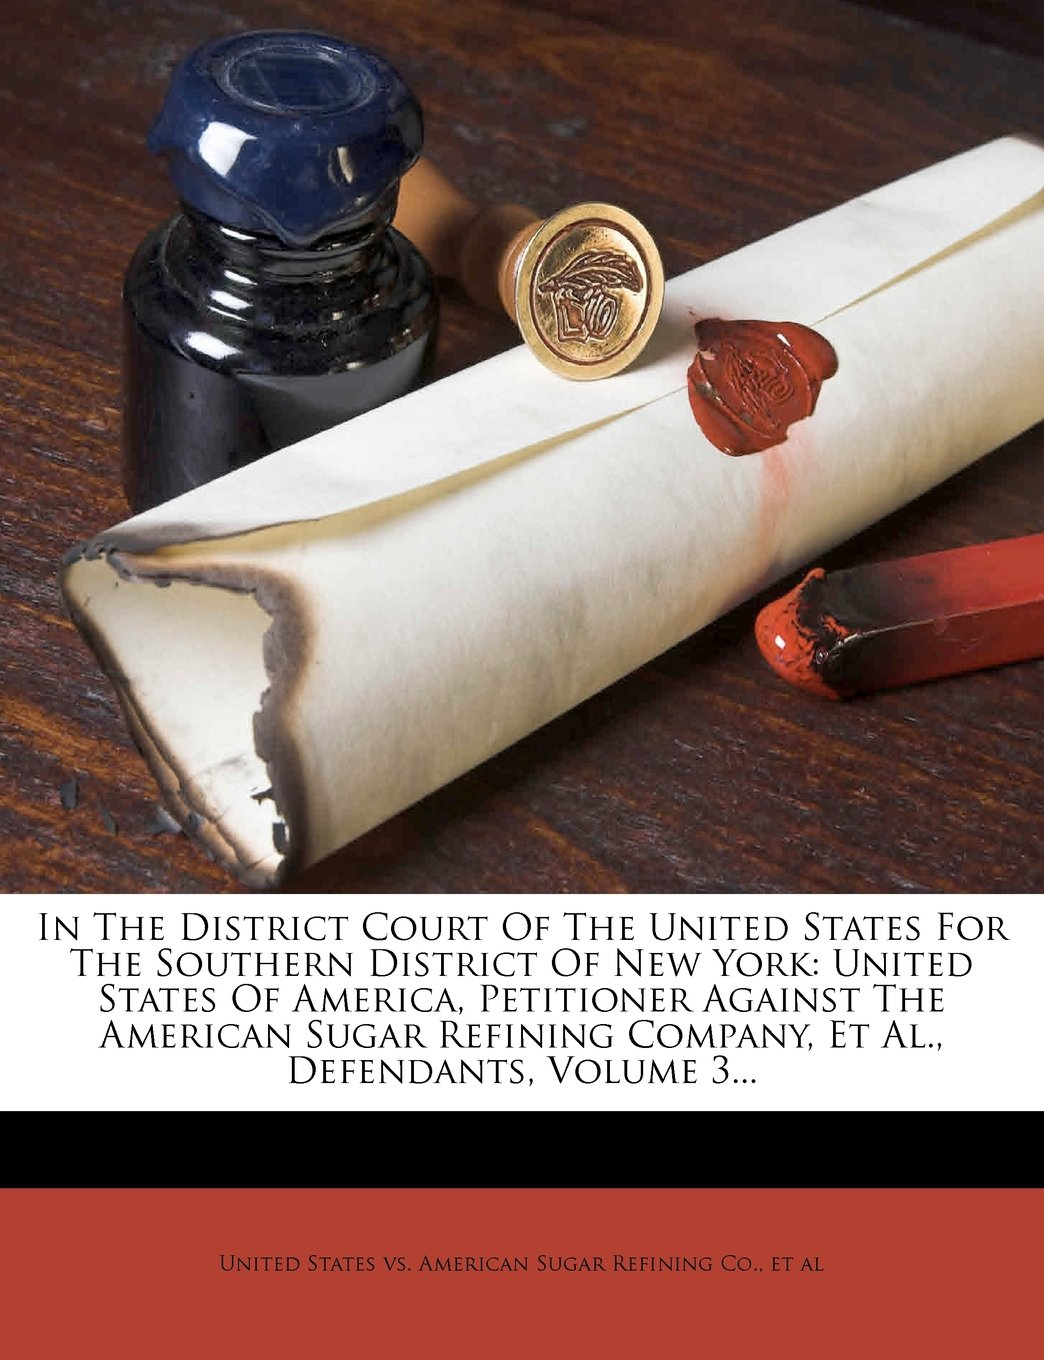 Download In The District Court Of The United States For The Southern District Of New York: United States Of America, Petitioner Against The American Sugar Refining Company, Et Al., Defendants, Volume 3... PDF